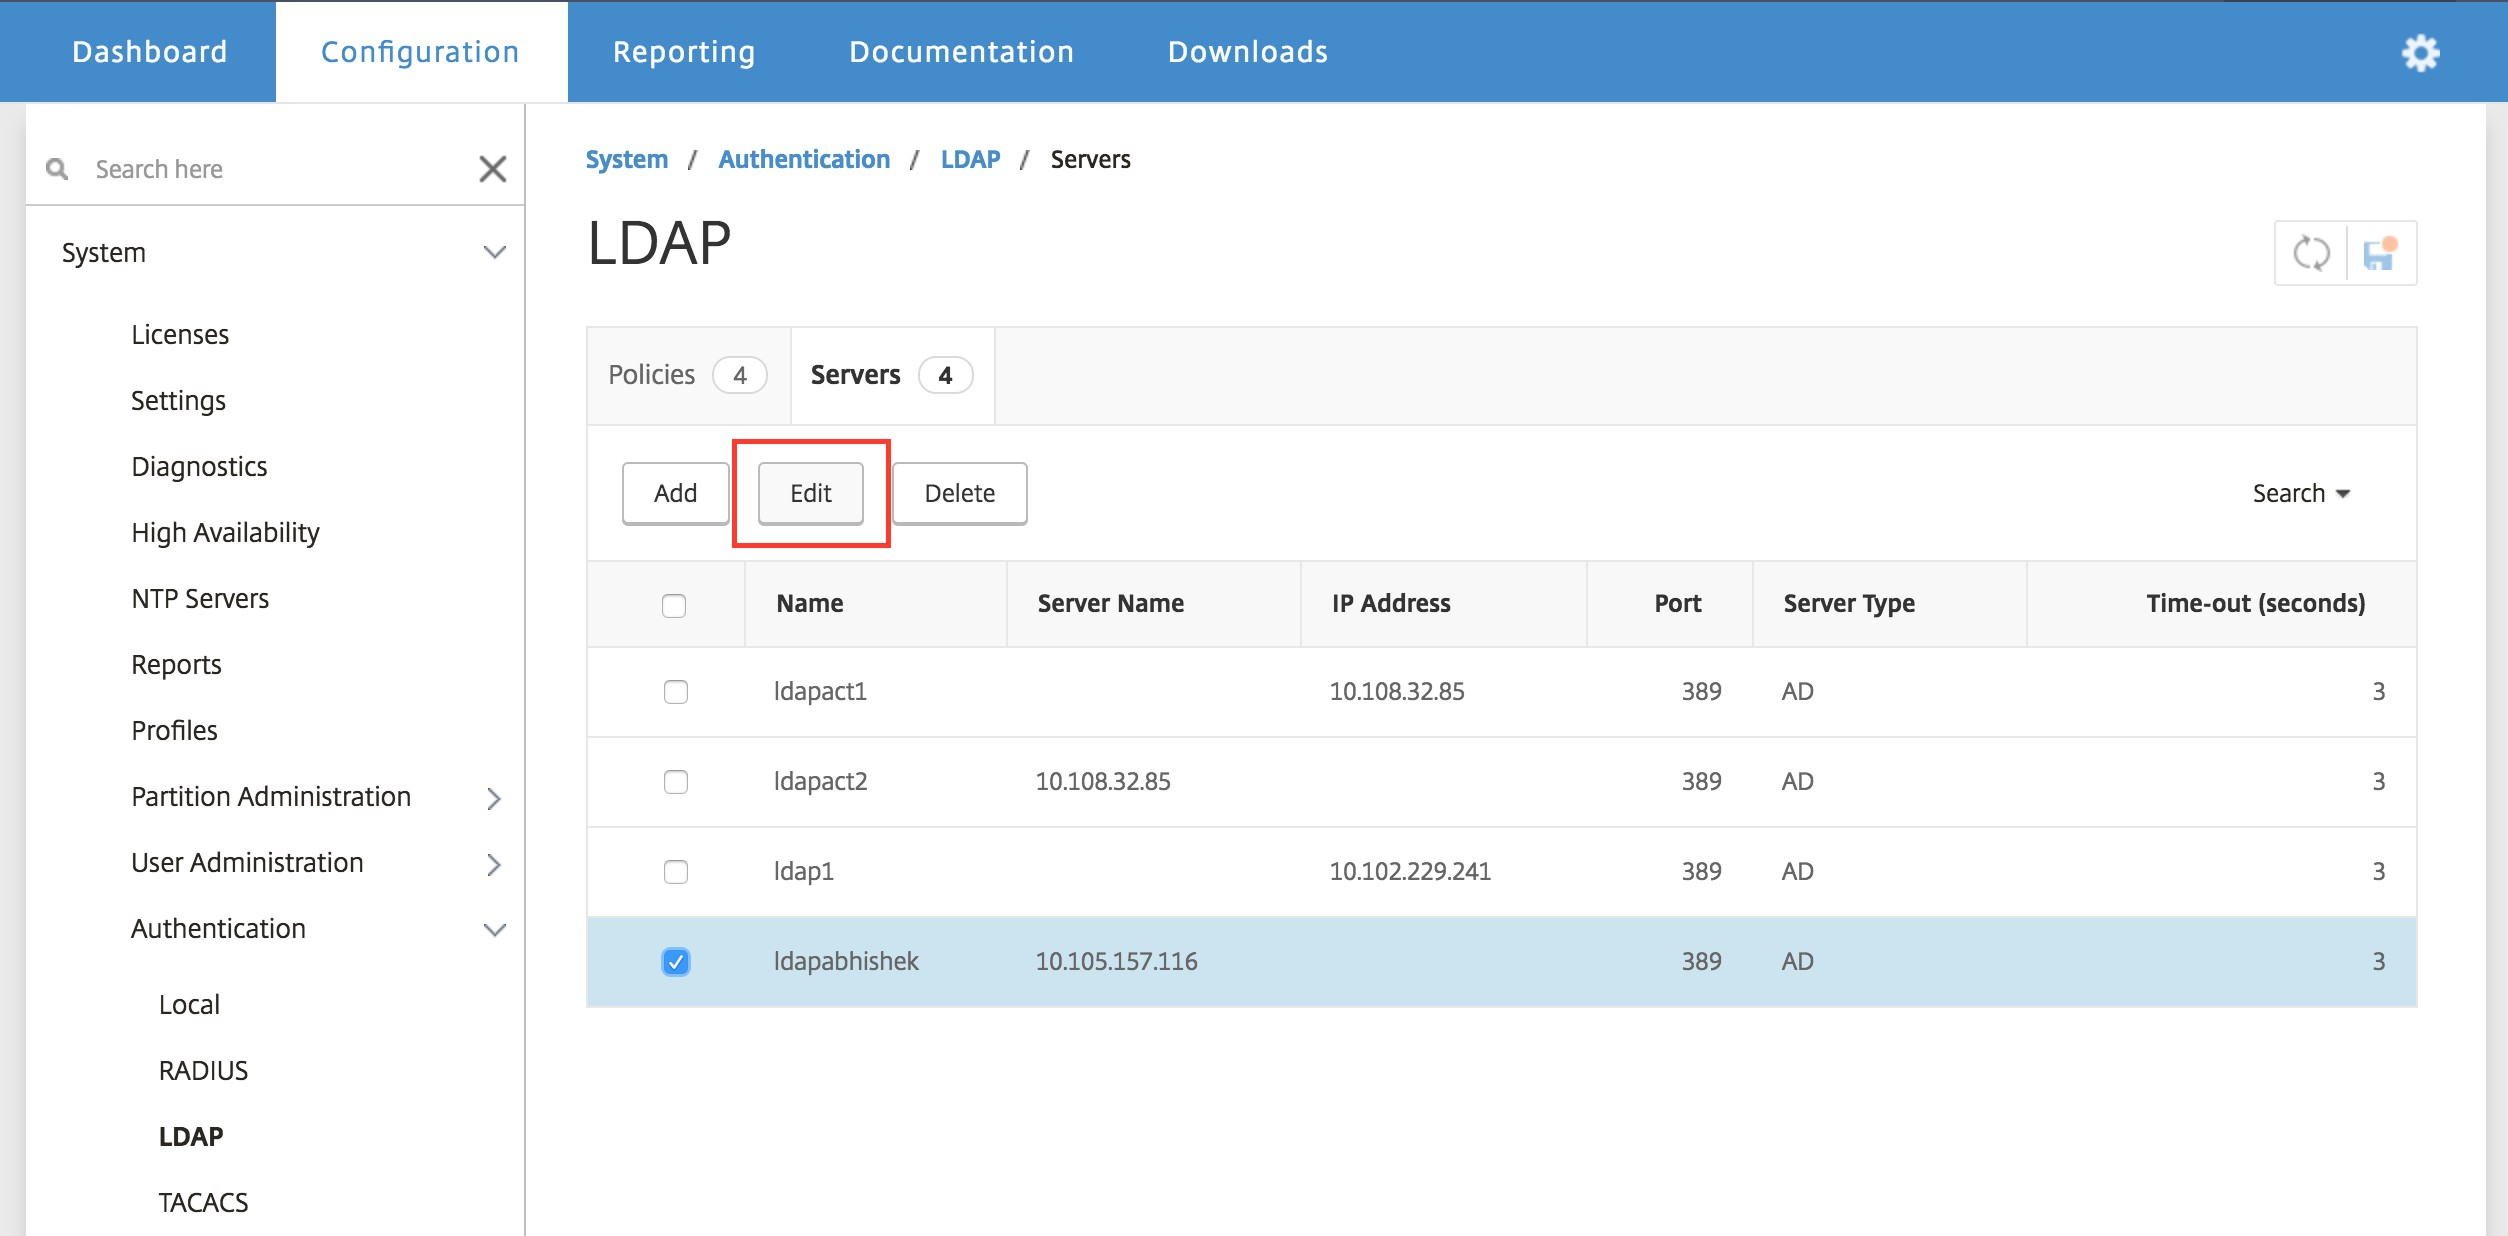 How to Disable Authentication on an LDAP Server and Use It